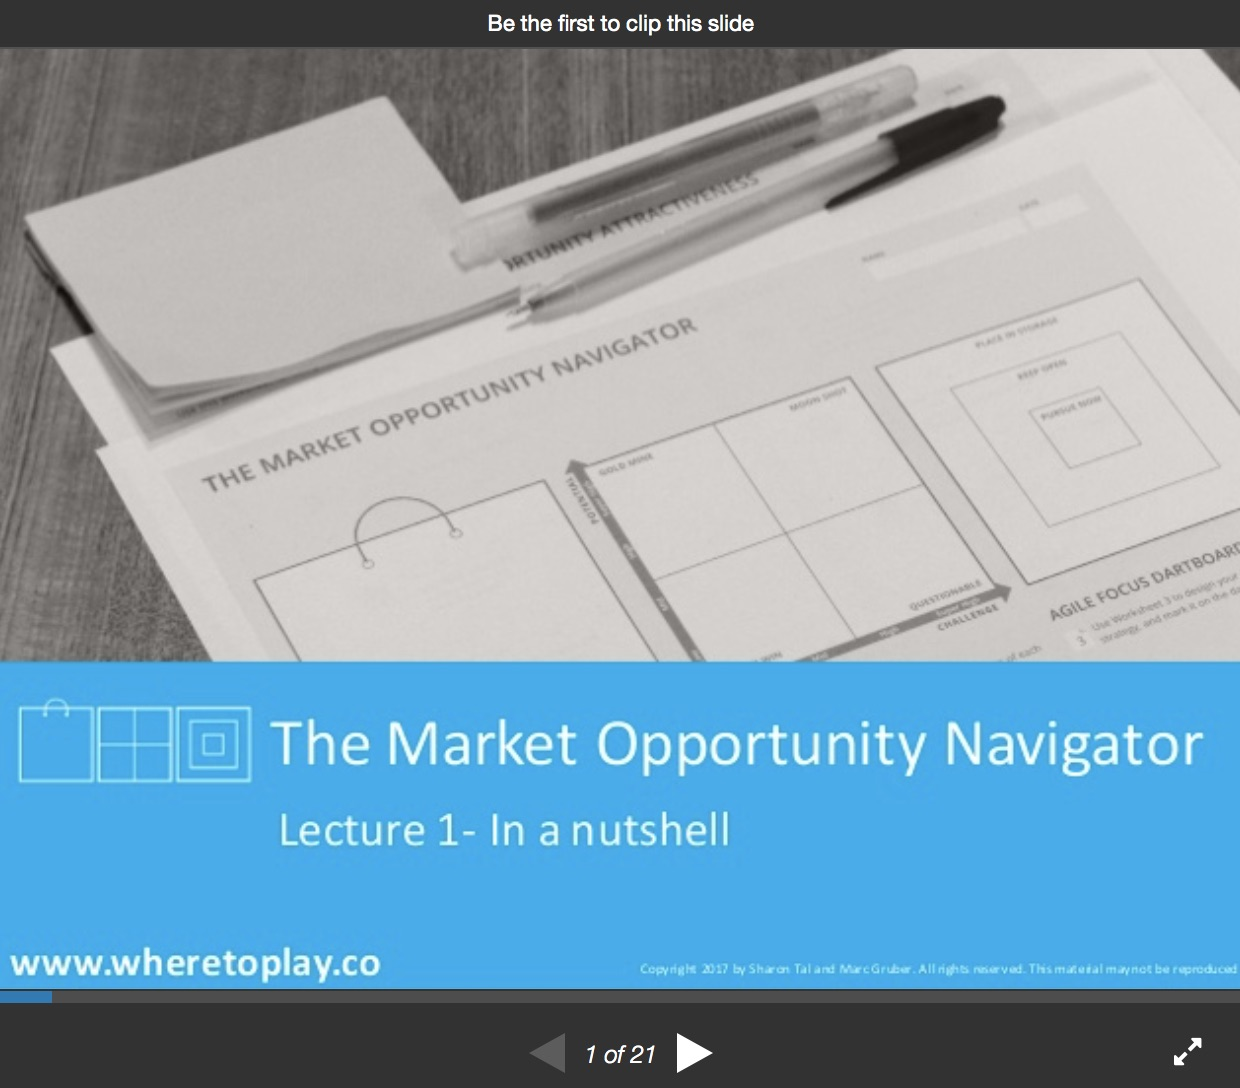 Where to Play - SlideShare for Educators